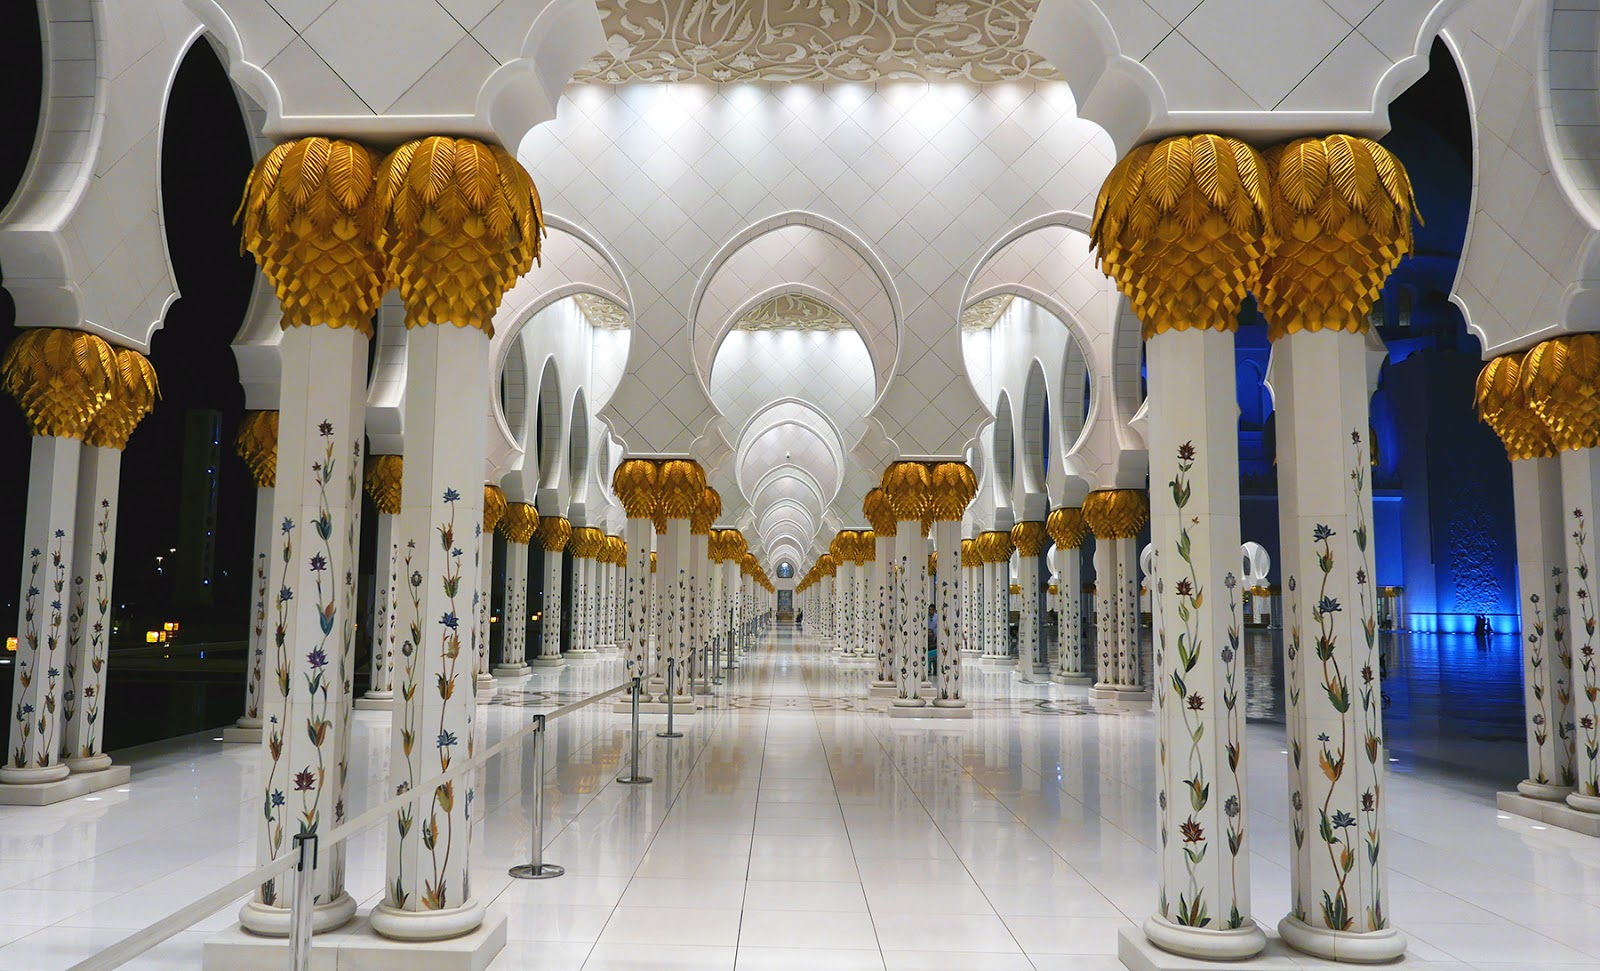 Euriental | luxury travel & style | Abu Dhabi Sheikh Zayed Mosque